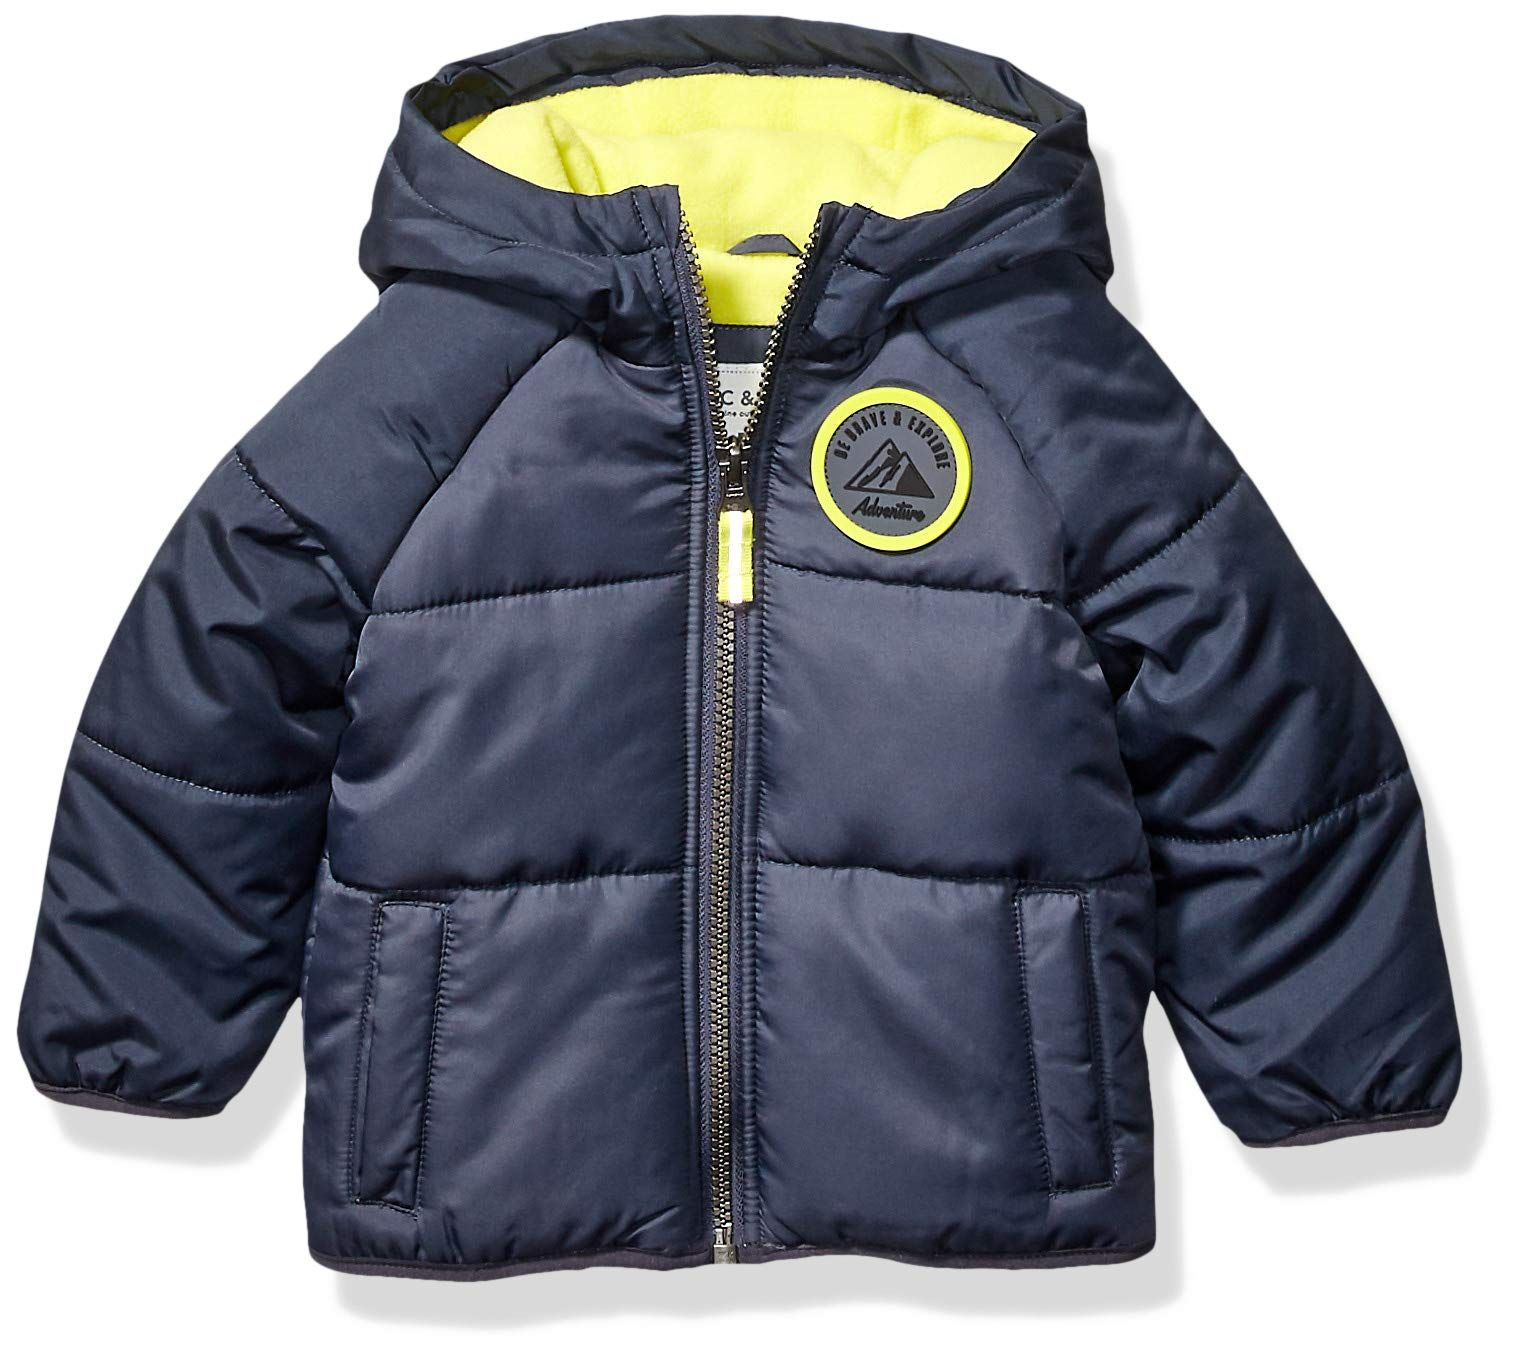 Carter S Baby Boys Adventure Bubble Jacket Armour Gray Azul Radioactive 12 Months Click Picture For More Detai In 2020 With Images Baby Boy Jackets Carters Baby Boys Jackets